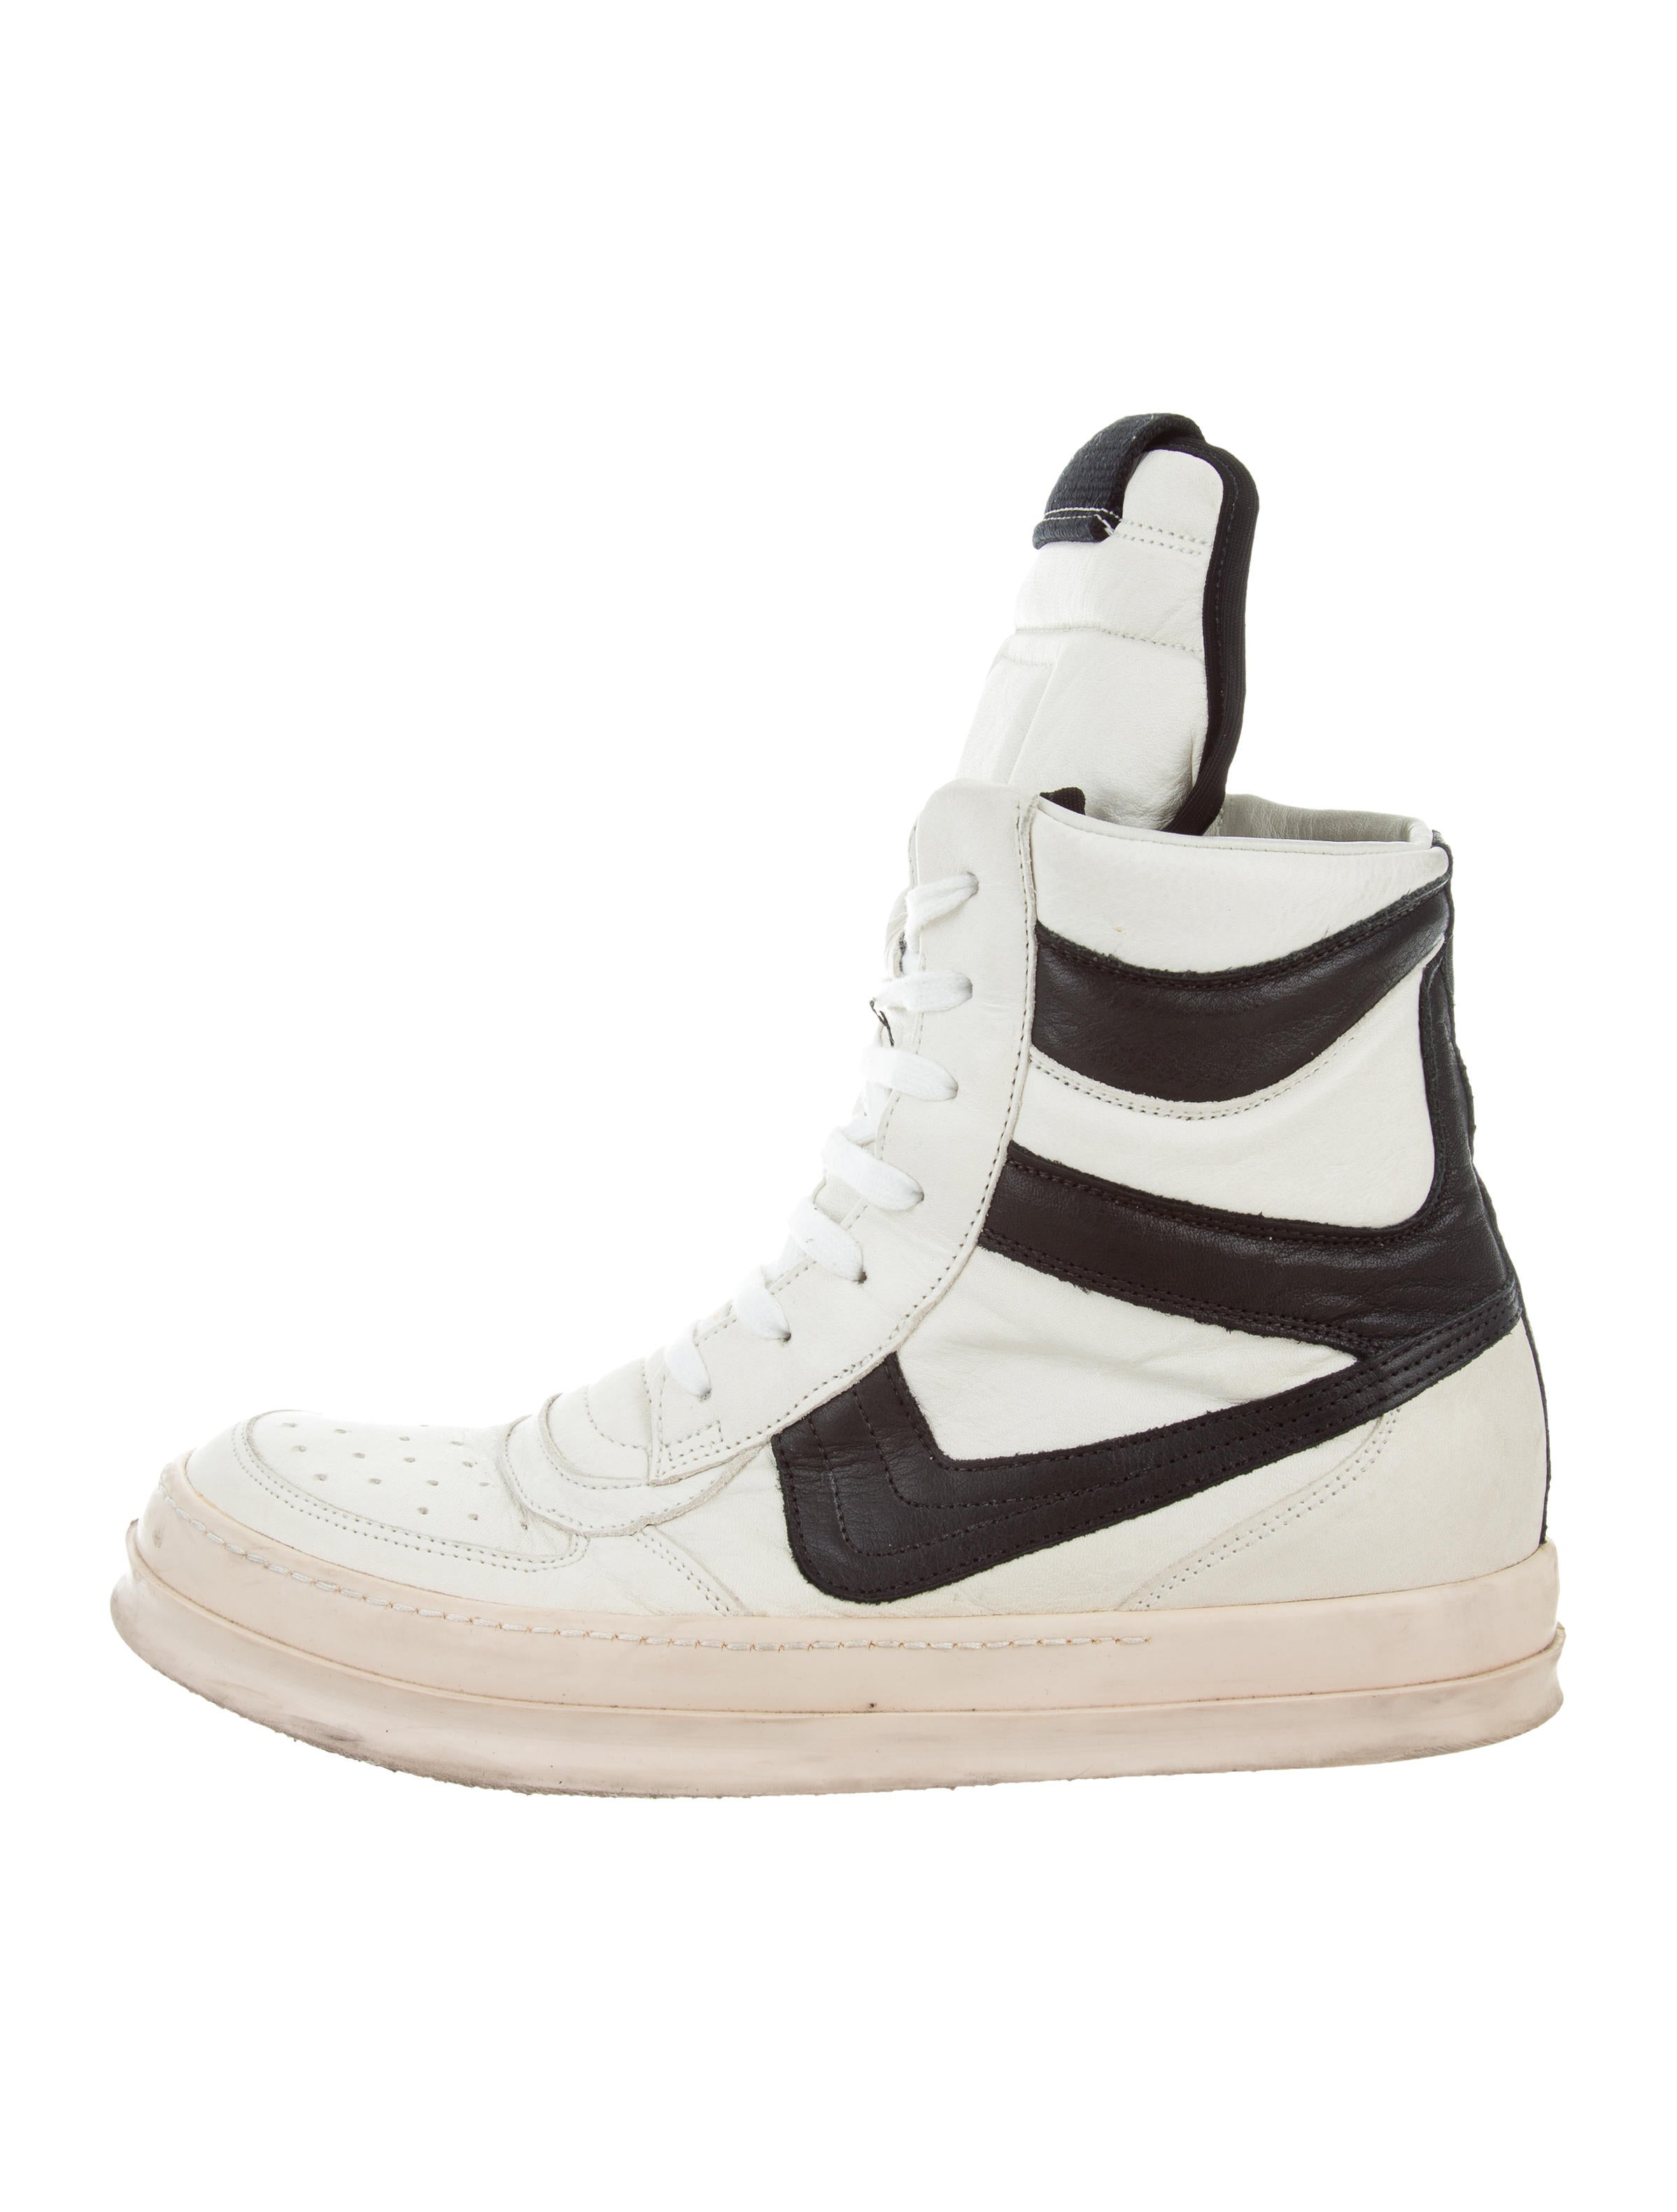 Rick Owens 2008 Creatch Dunk Leather Sneakers - Shoes - RIC30118 | The  RealReal